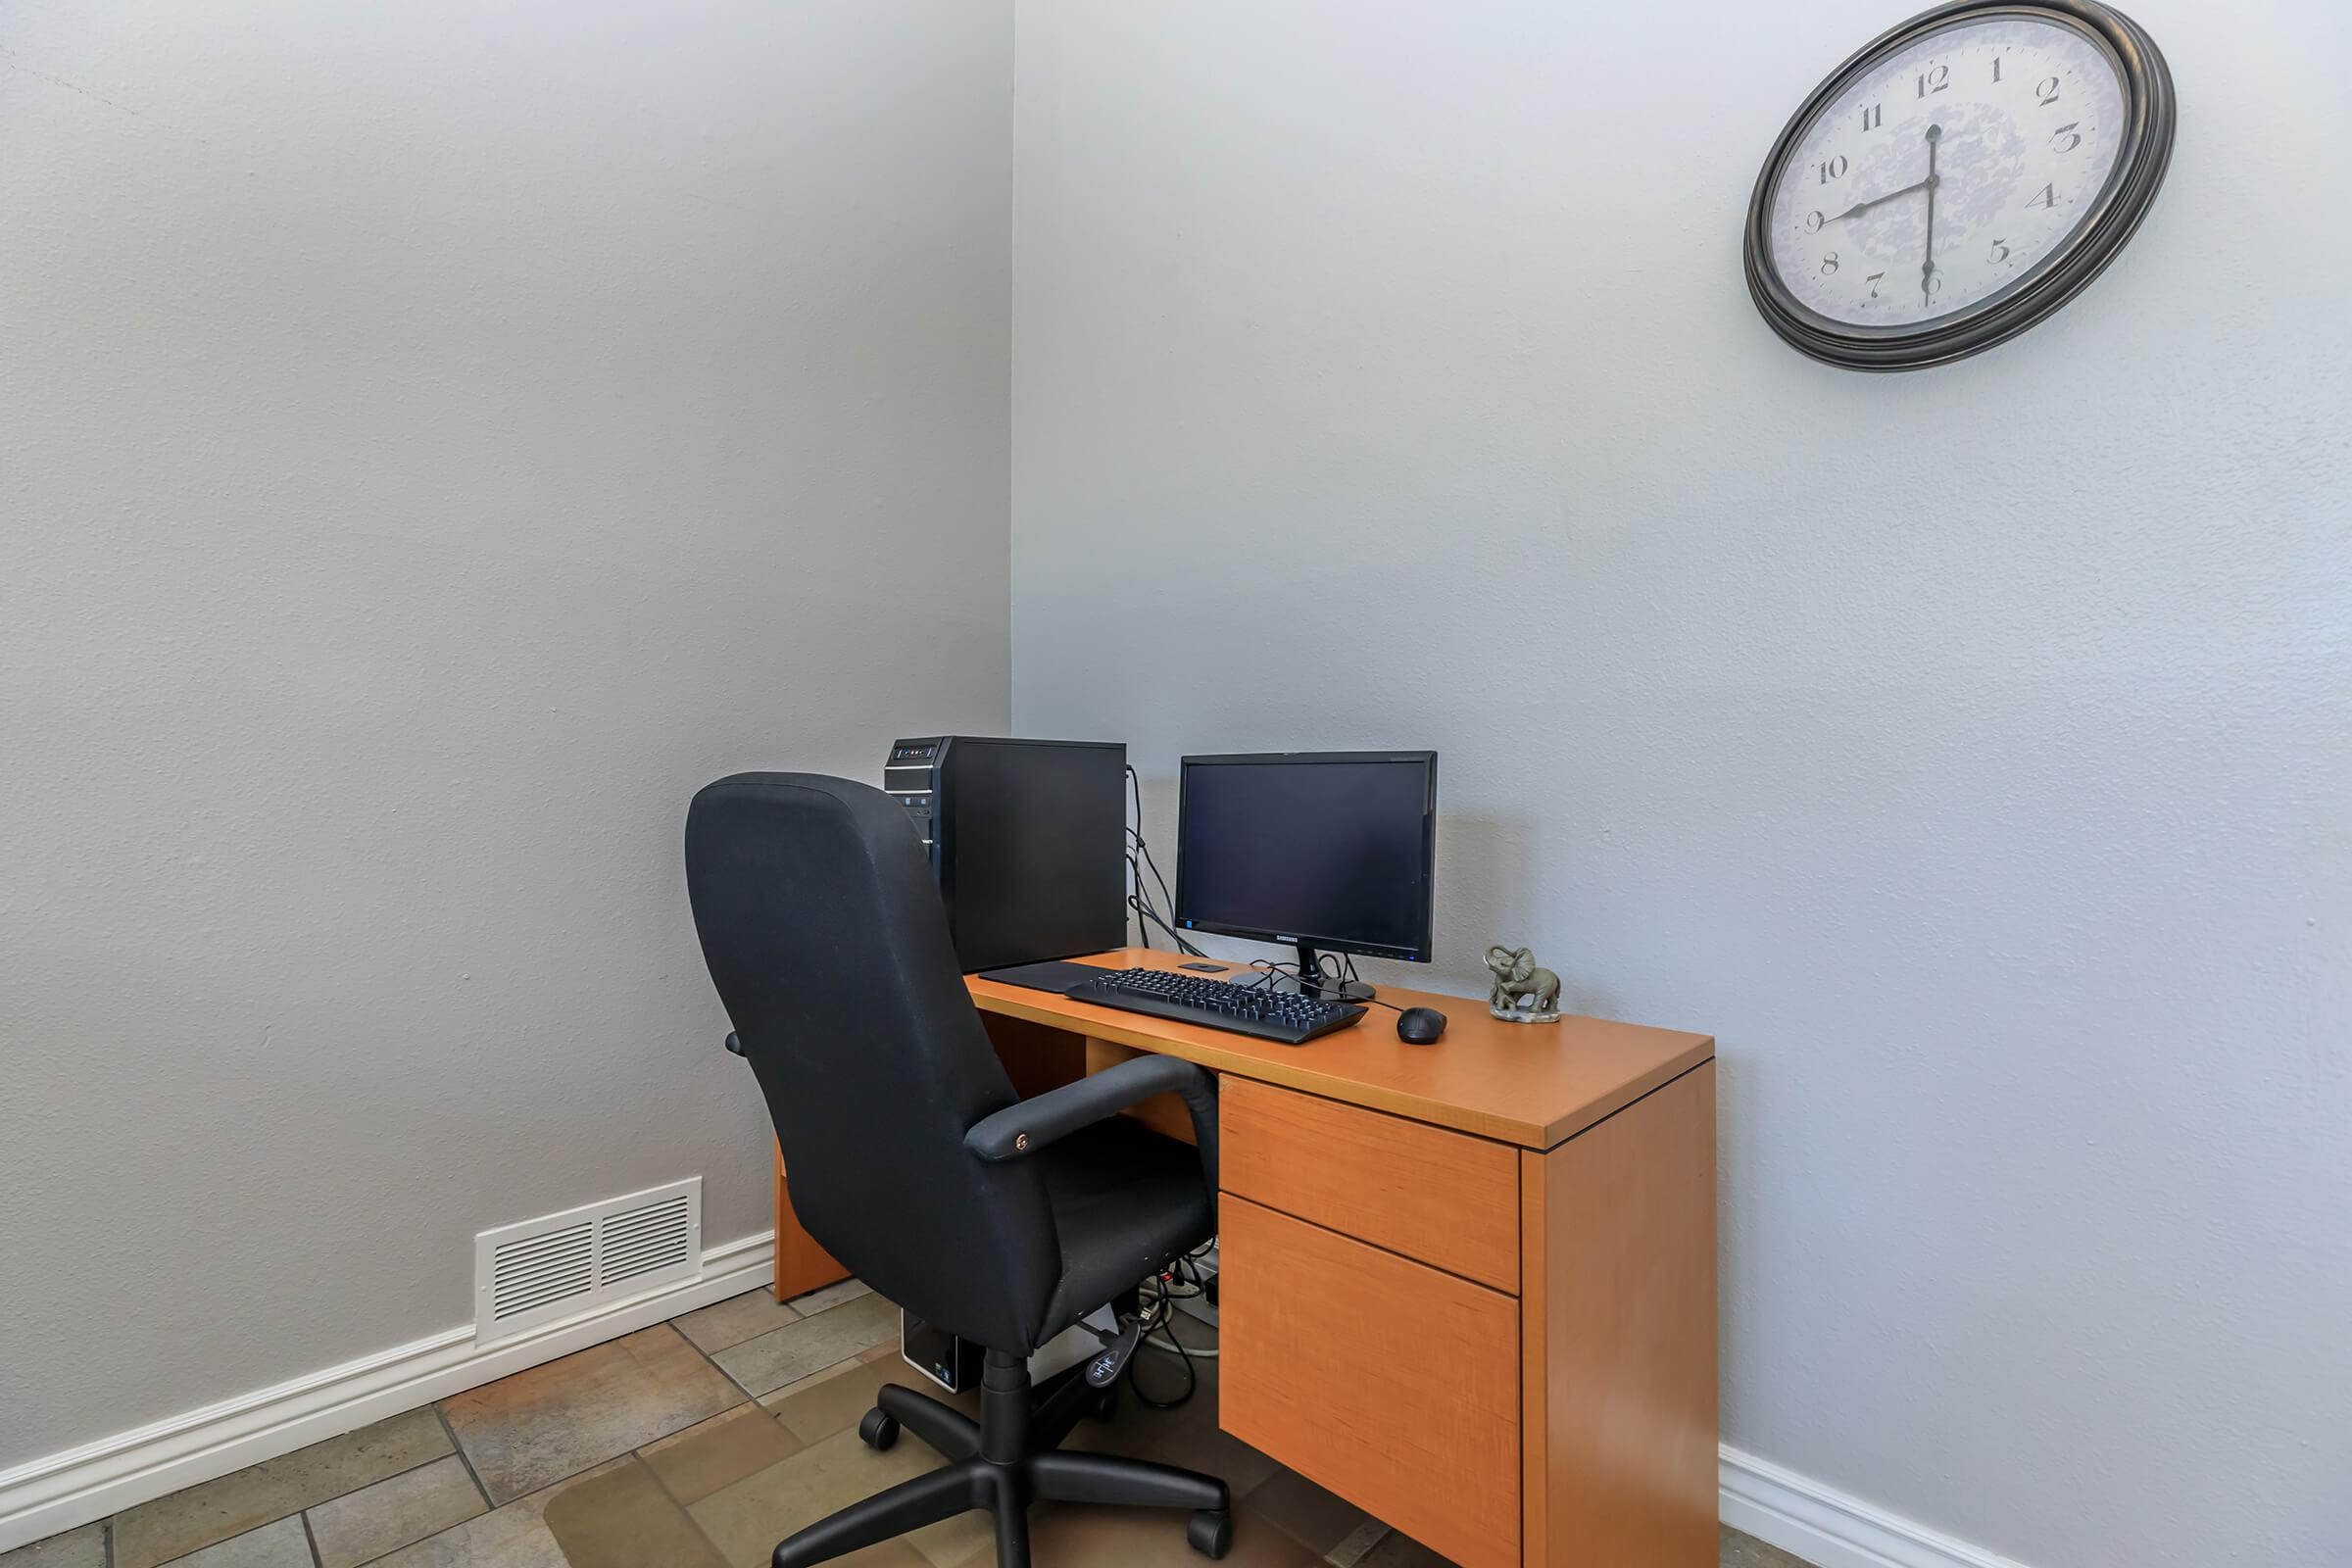 a chair sitting in front of a computer